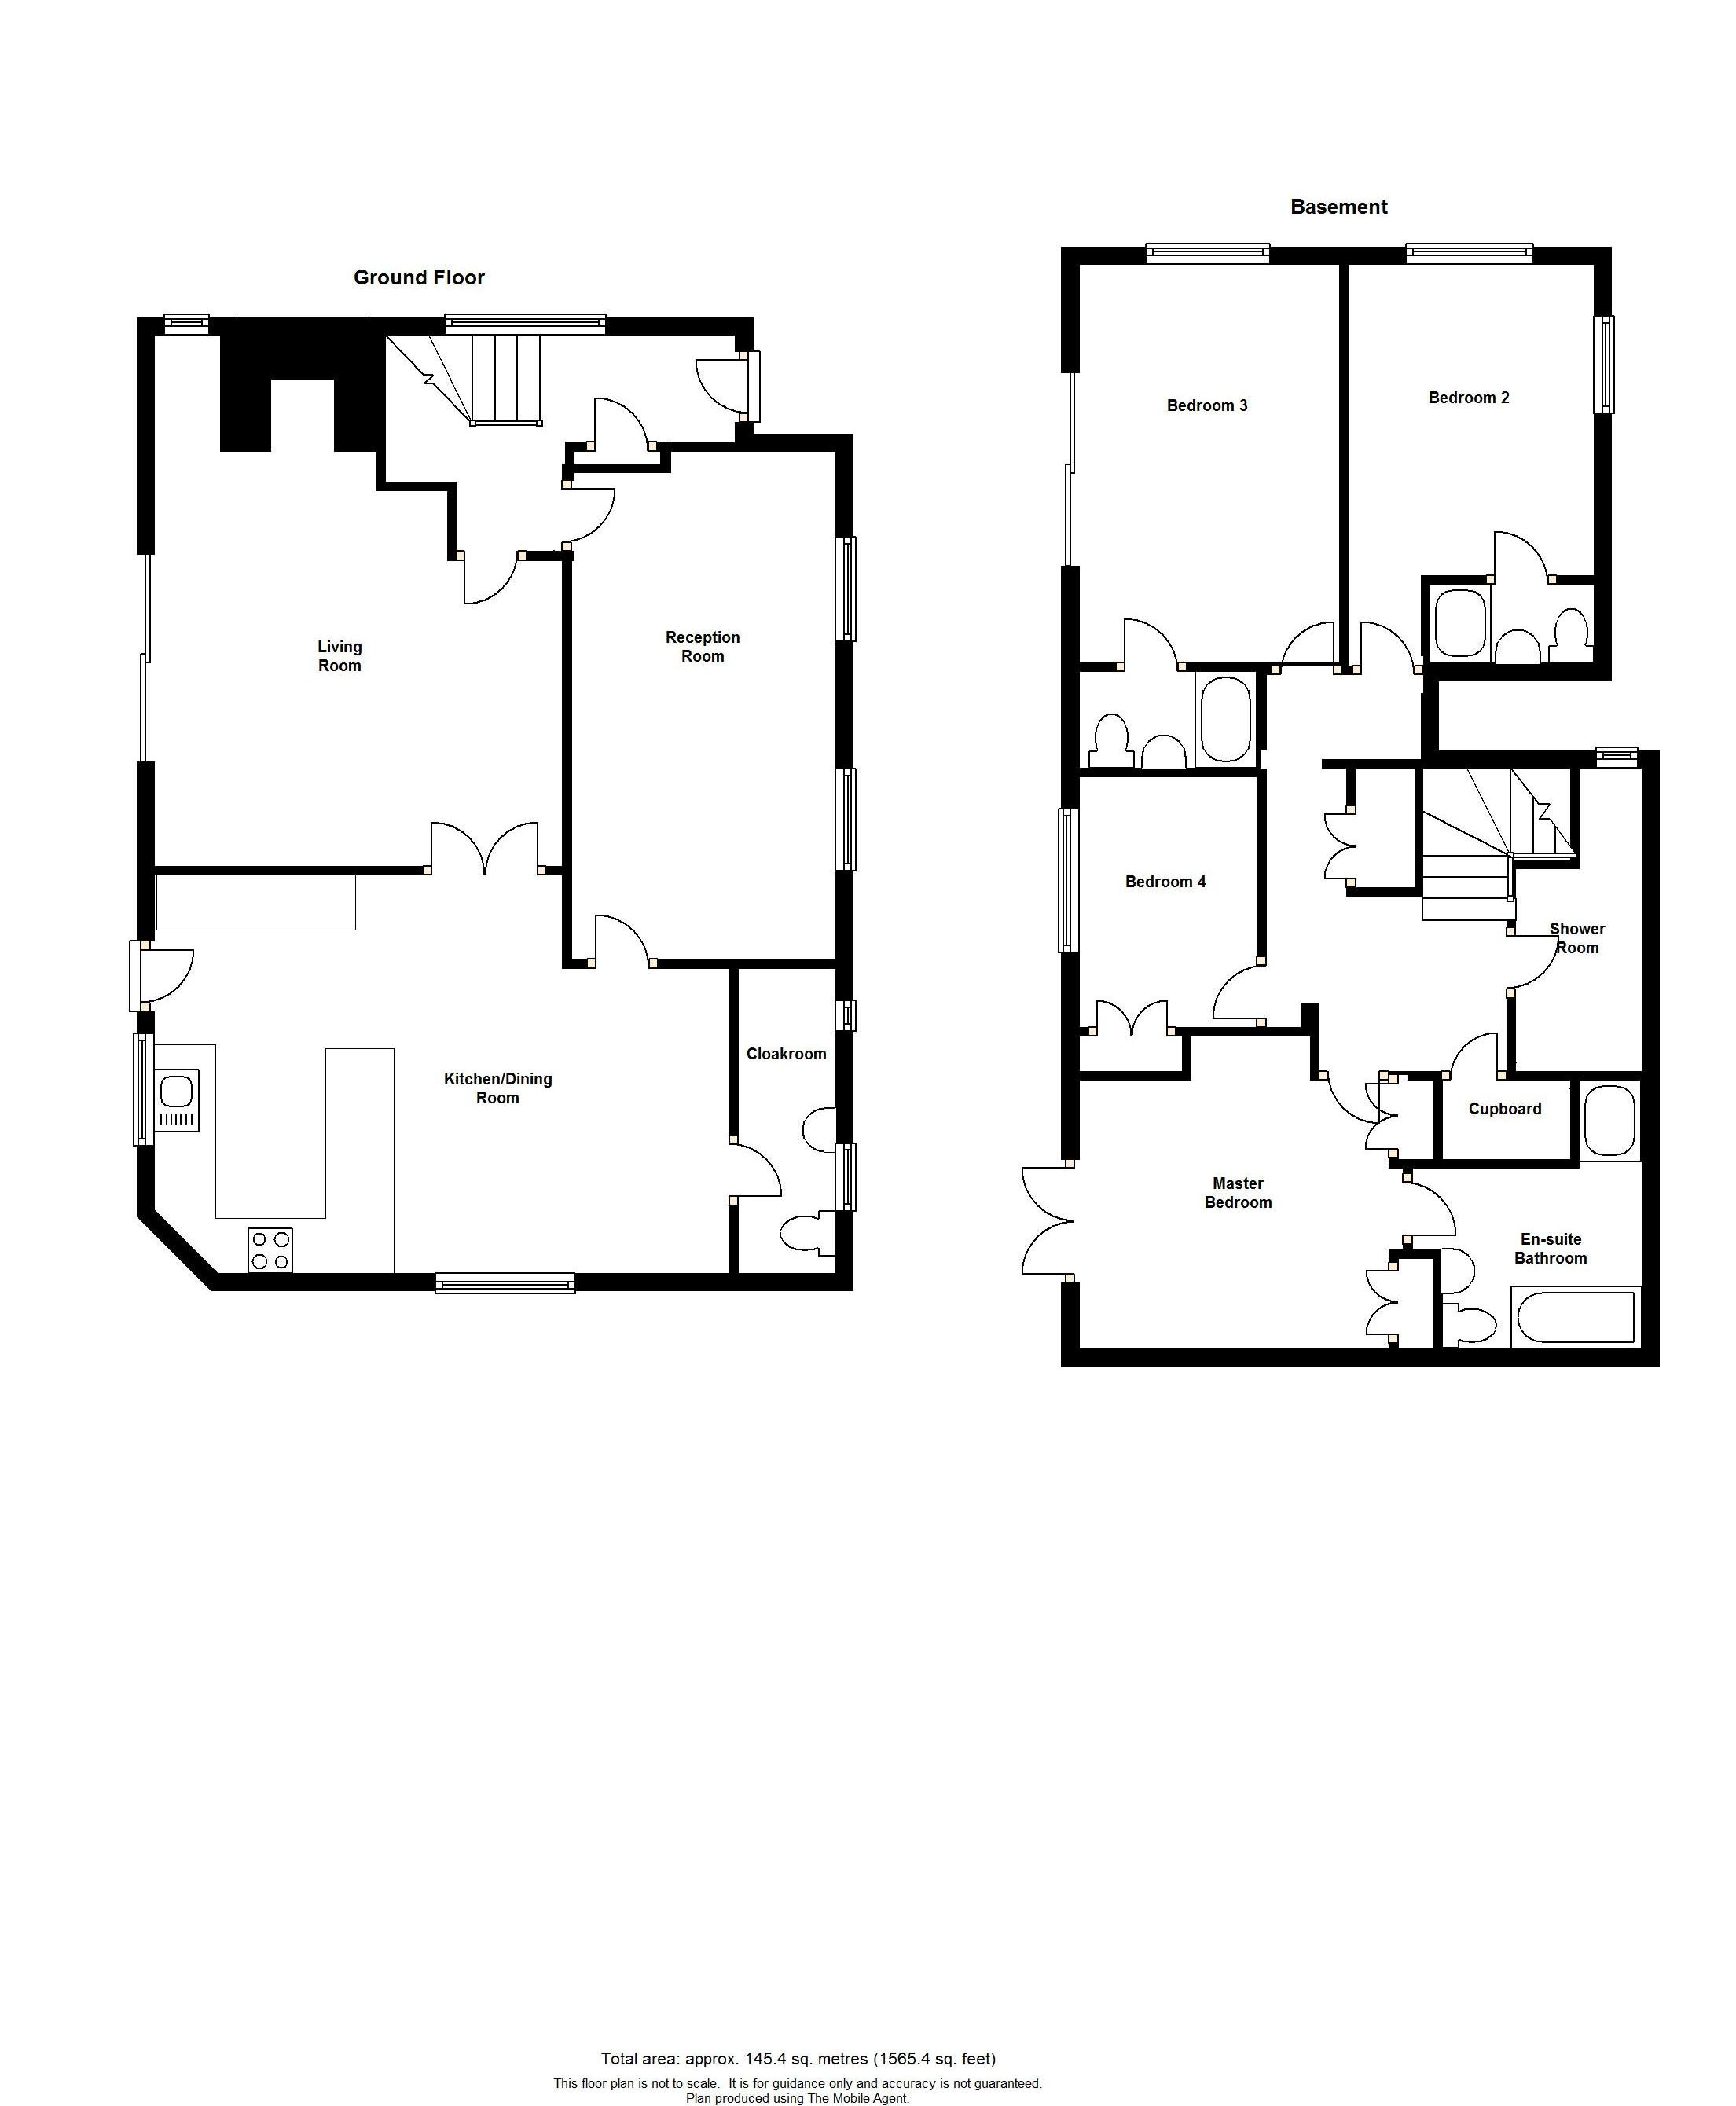 Floorplans For Timber Lodge, Charing Hill